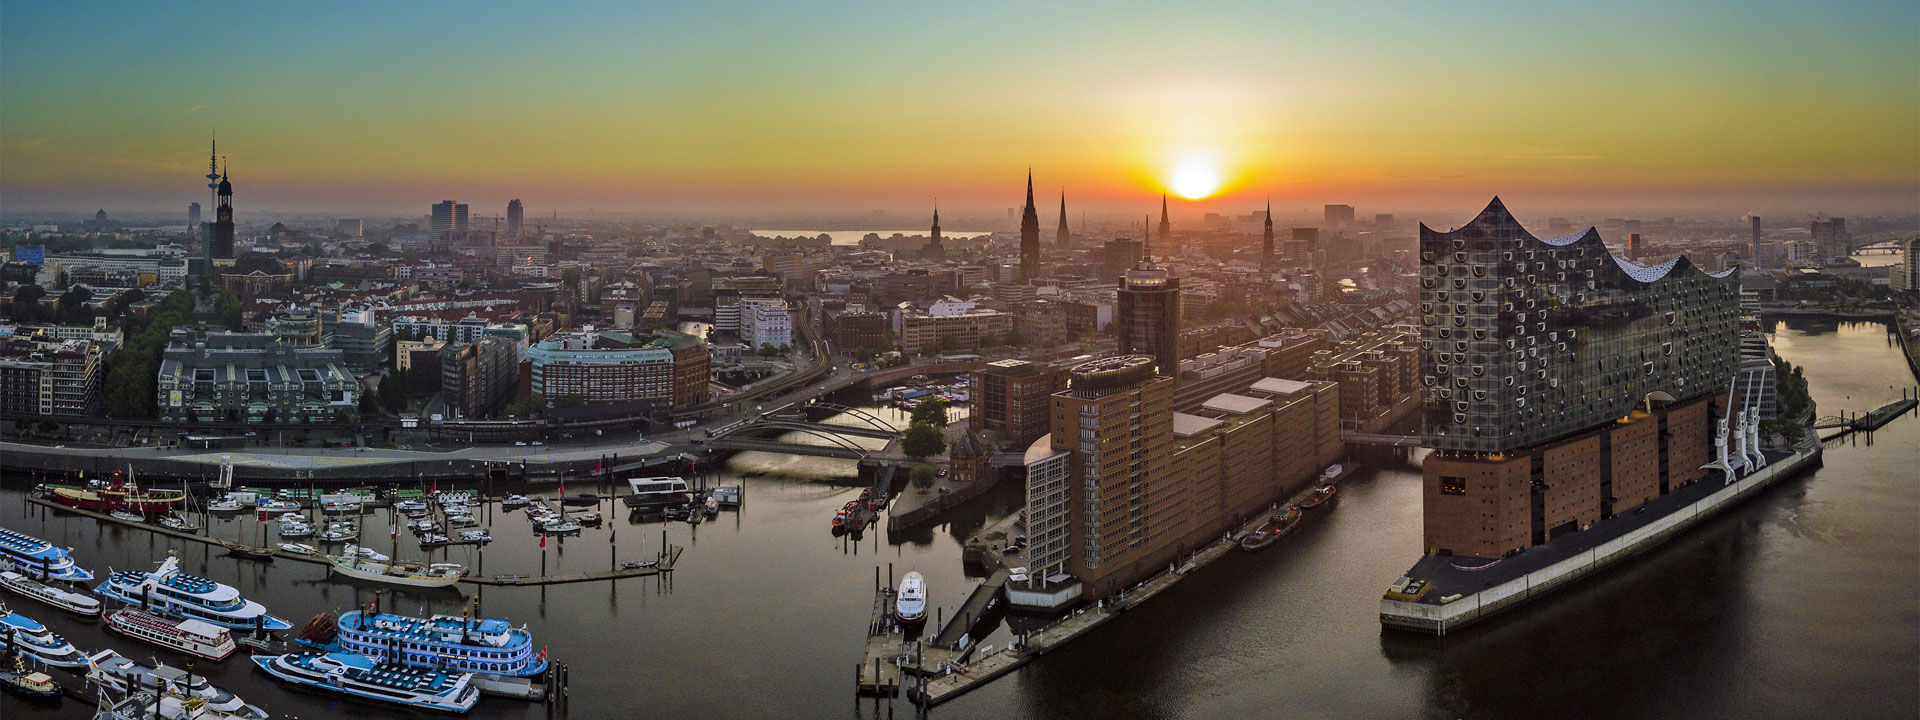 Morning atmosphere at Hamburg with Elphi